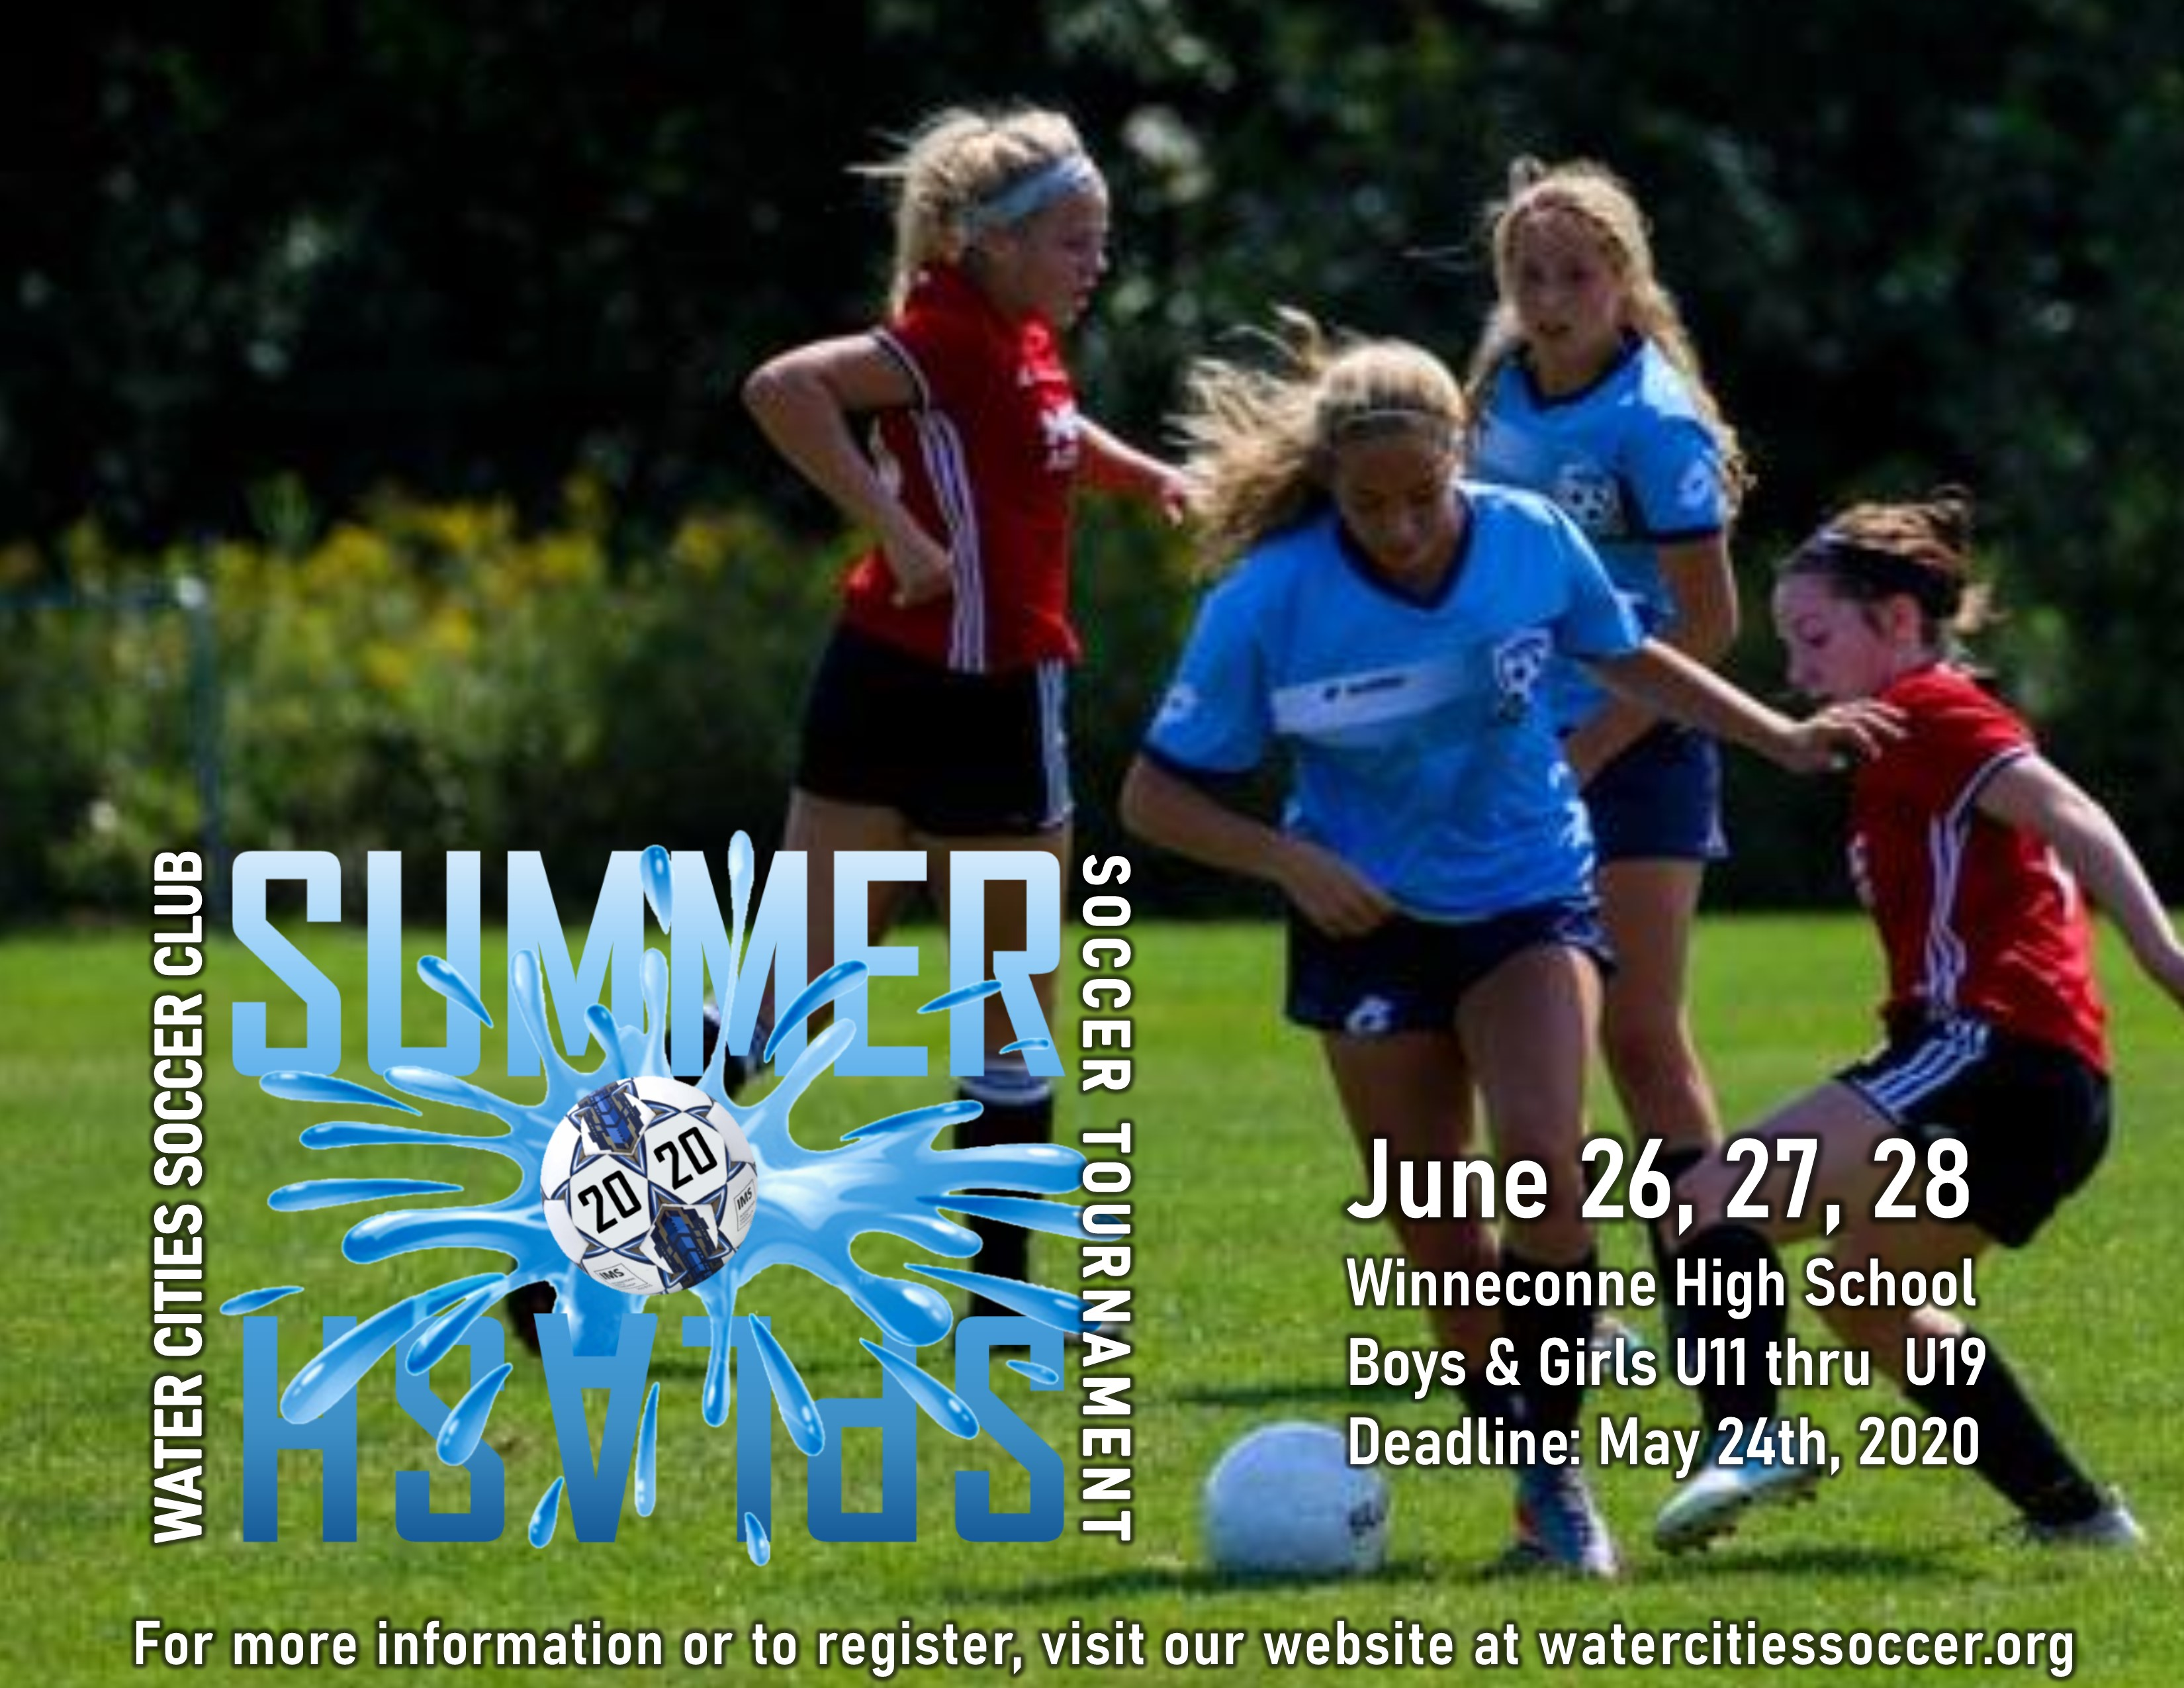 WATER CITIES SUMMER SPLASH TOURNAMENT!!